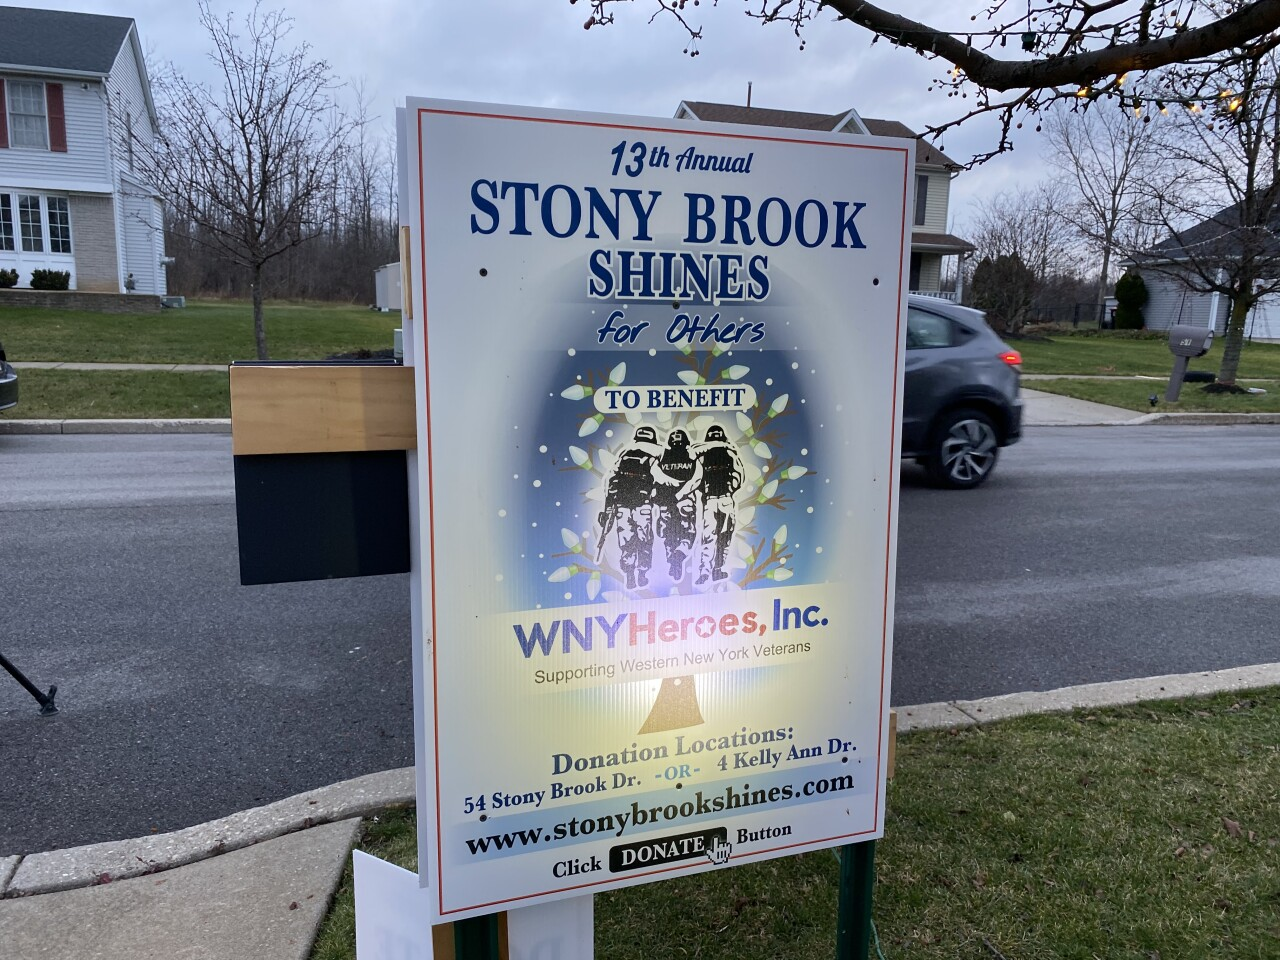 Stony Brook Shines has donated more than $100,000 since 2008